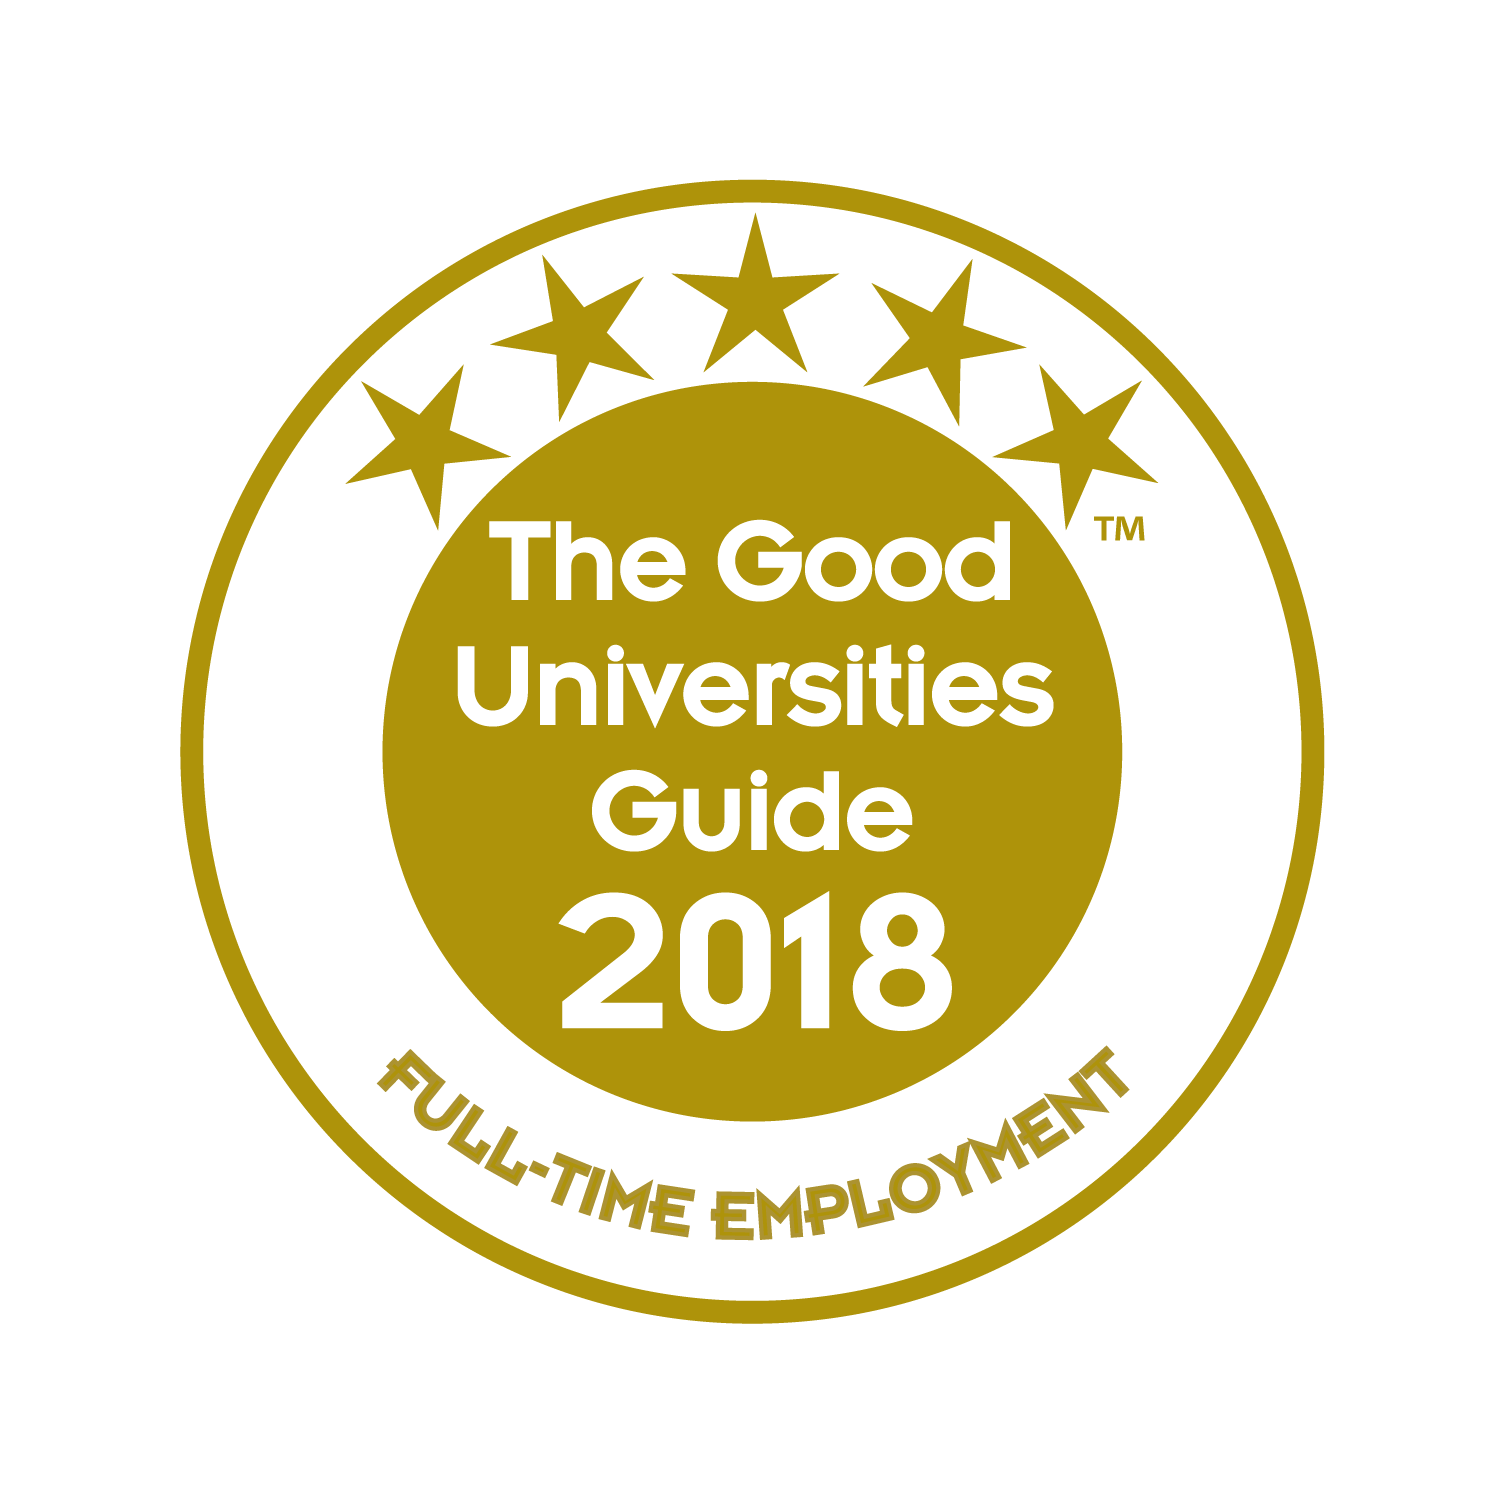 Good universities guide badge for five stars for full time employment.